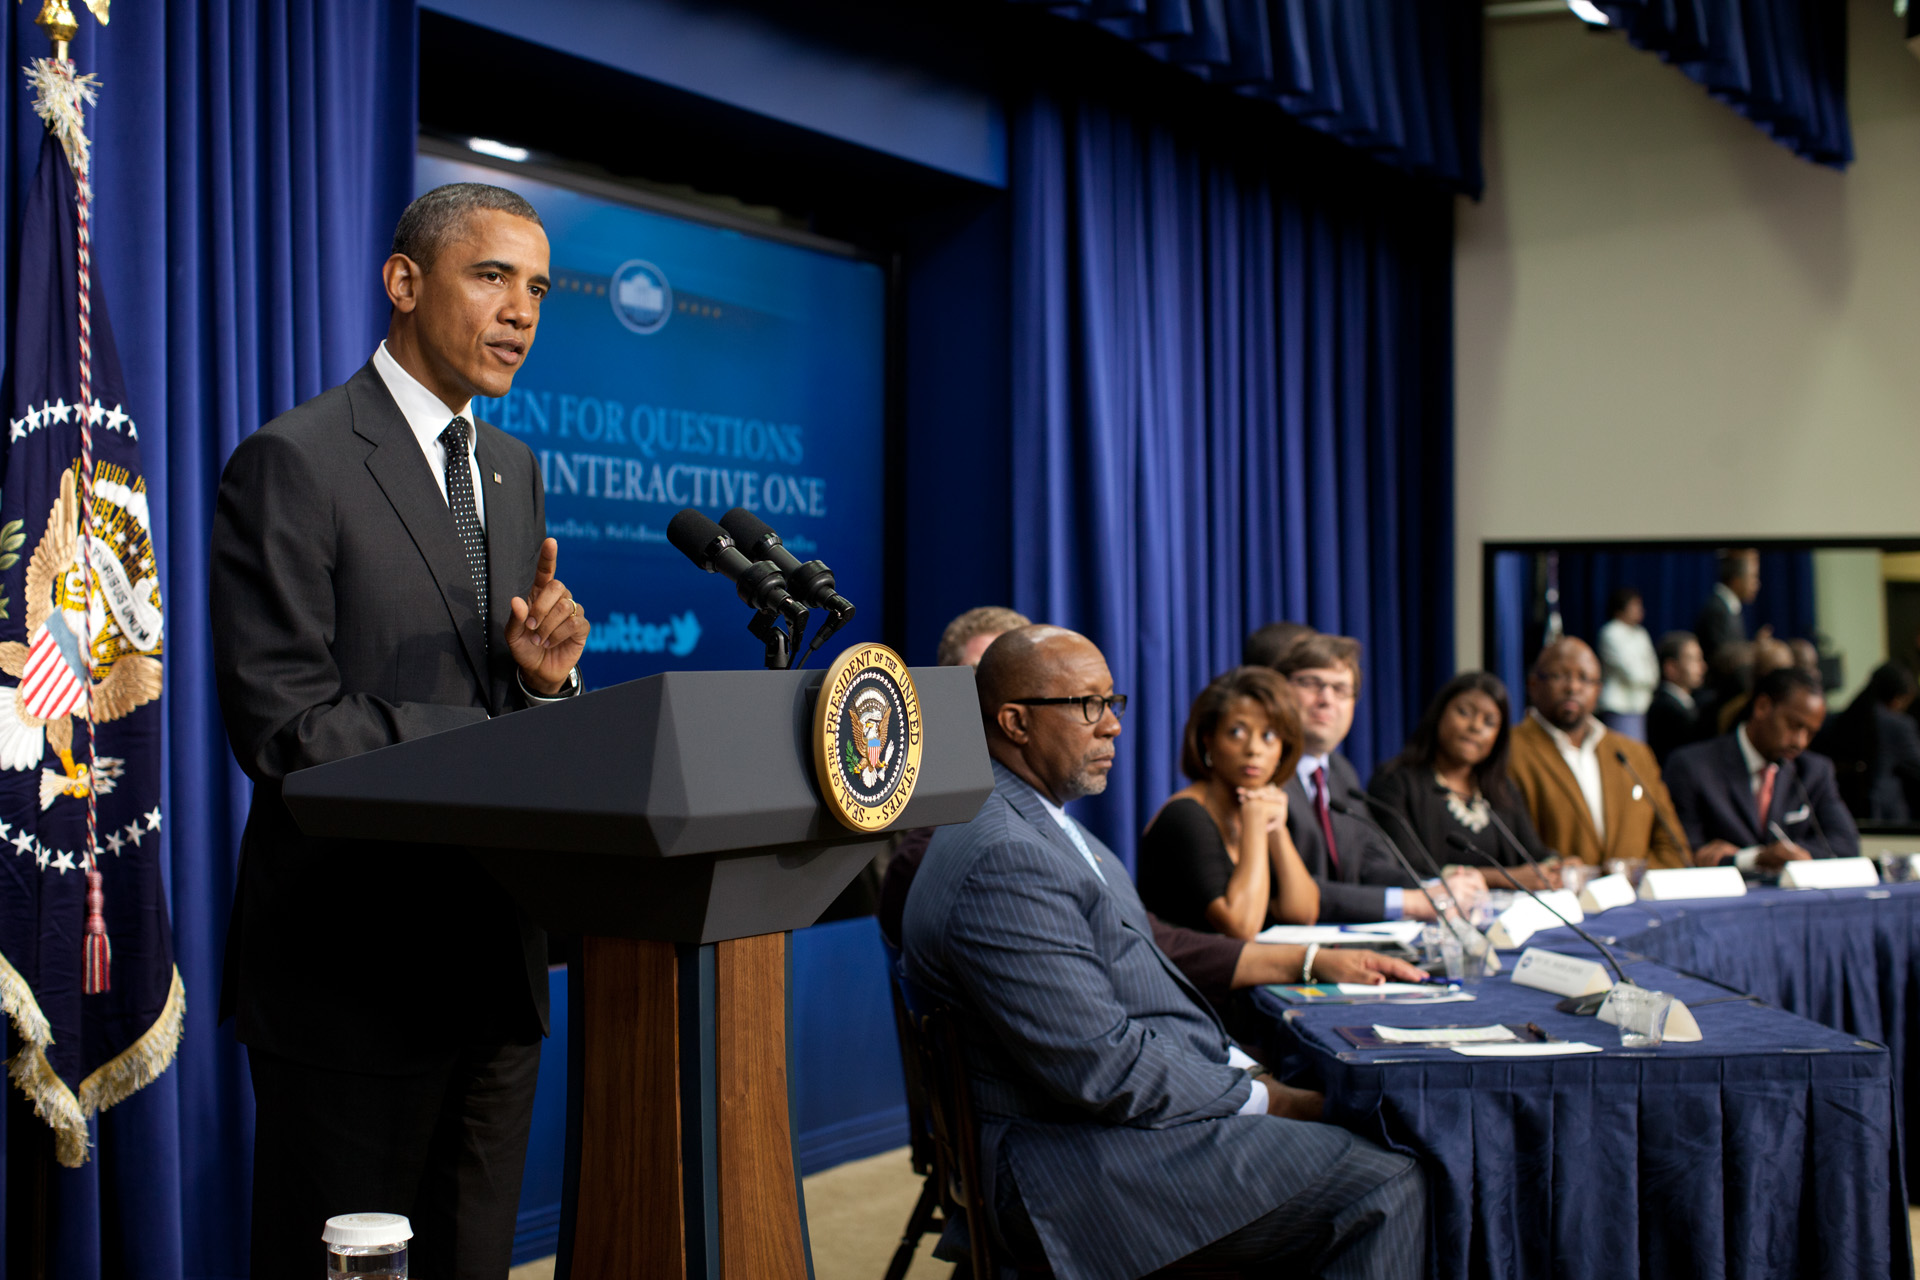 President Barack Obama drops by an Interactive One panel